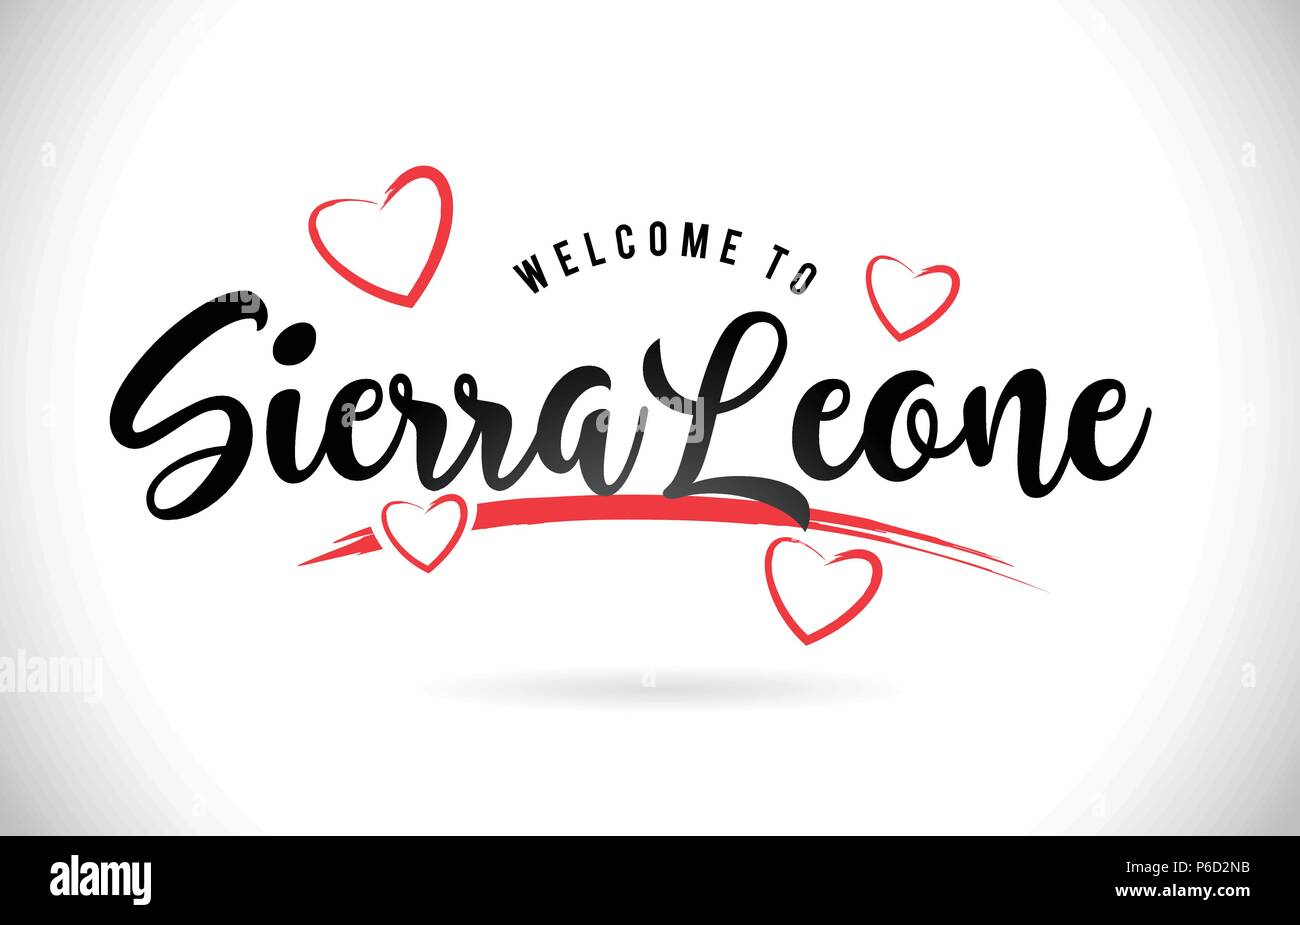 SierraLeone Welcome To Word Text with Handwritten Font and Red Love Hearts Vector Image Illustration Eps. - Stock Image